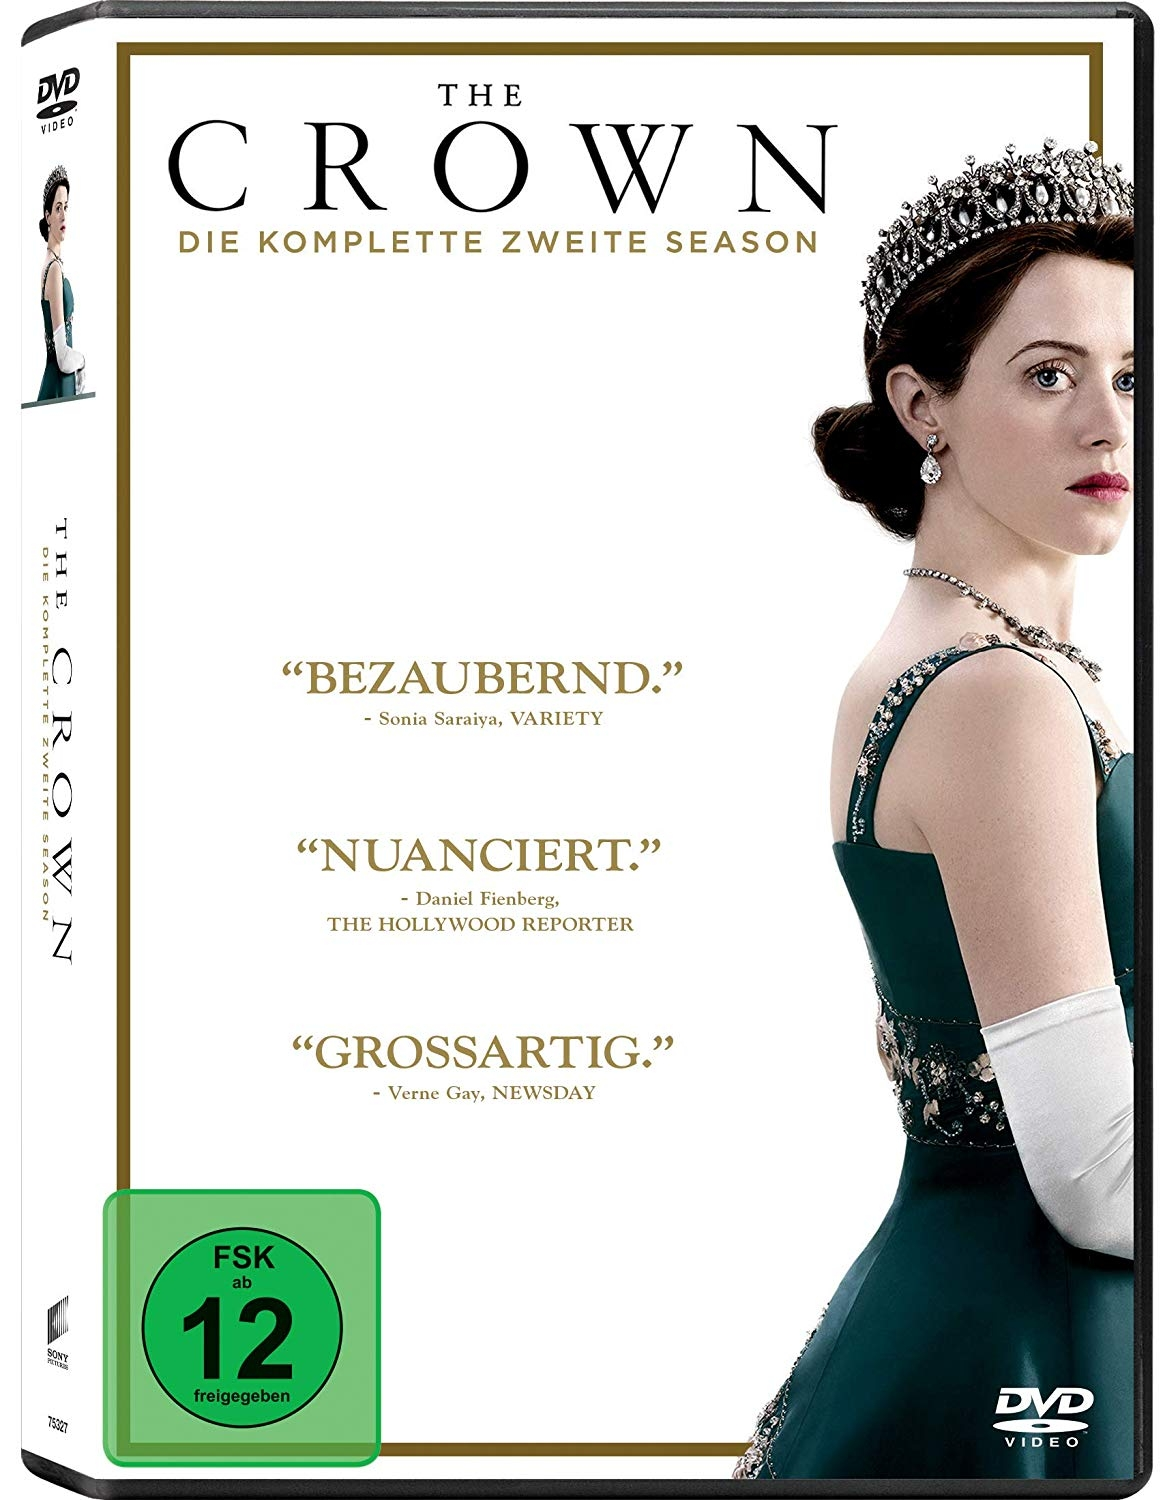 dvd 10 18 The Crown 2